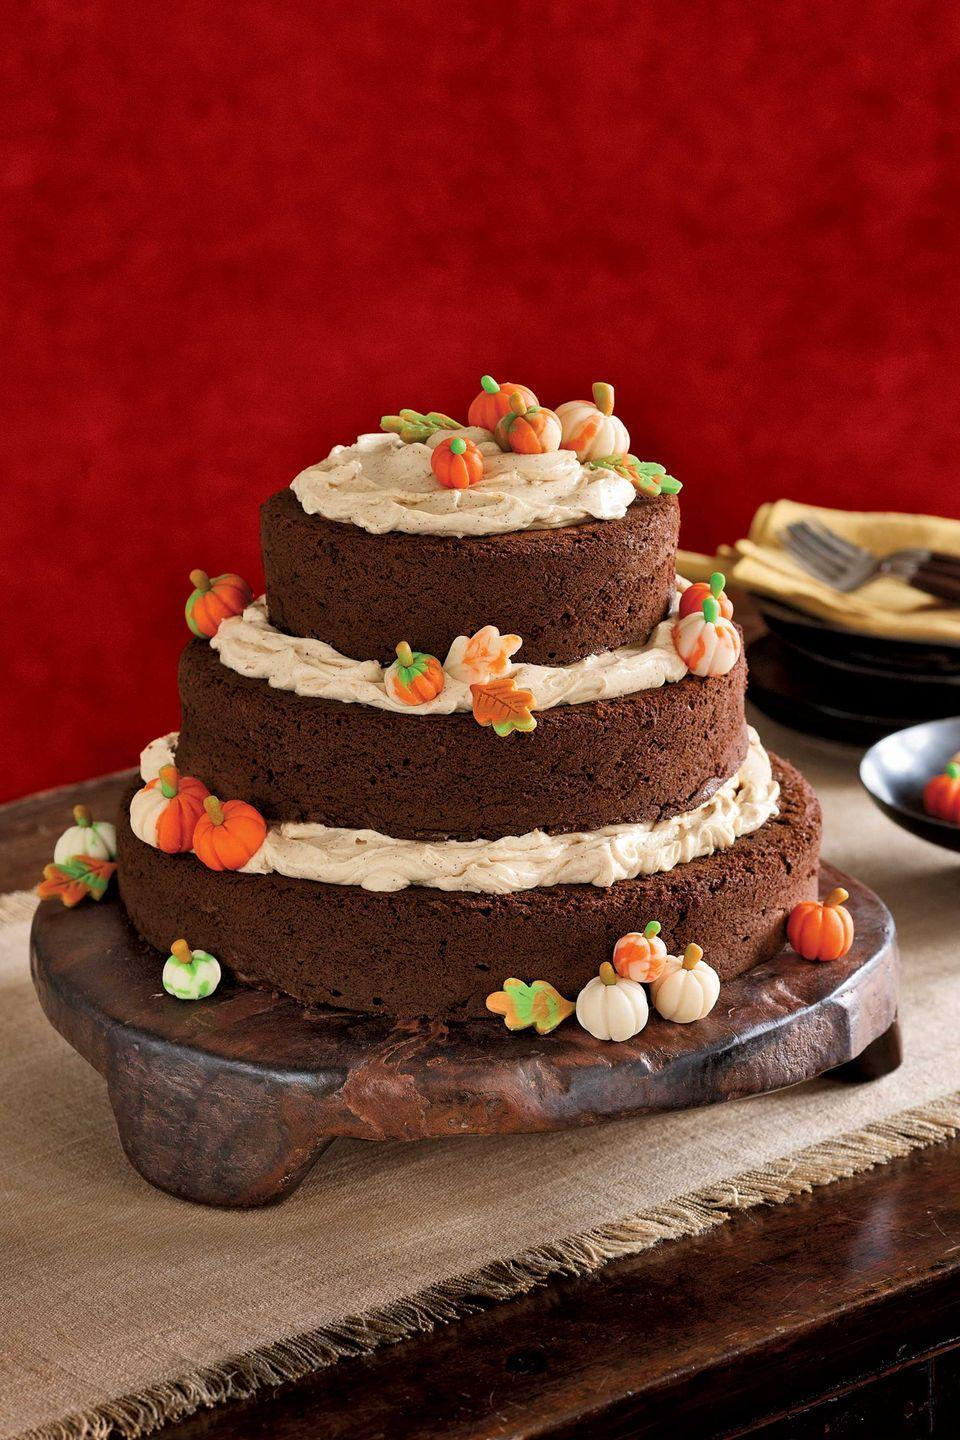 """<p>This towering pumpkin patch begins as three cakes in graduated sizes, with three generous layers of buttercream that escape temptingly toward the tiers' edges. The pumpkins and leaves, both made of tinted marzipan, needn't be perfect to be appreciated, so invite young helpers to assist.</p><p><strong><a href=""""https://www.countryliving.com/food-drinks/recipes/a842/pumpkin-spice-pecan-cake-35/"""" rel=""""nofollow noopener"""" target=""""_blank"""" data-ylk=""""slk:Get the recipe"""" class=""""link rapid-noclick-resp"""">Get the recipe</a>.</strong> </p>"""